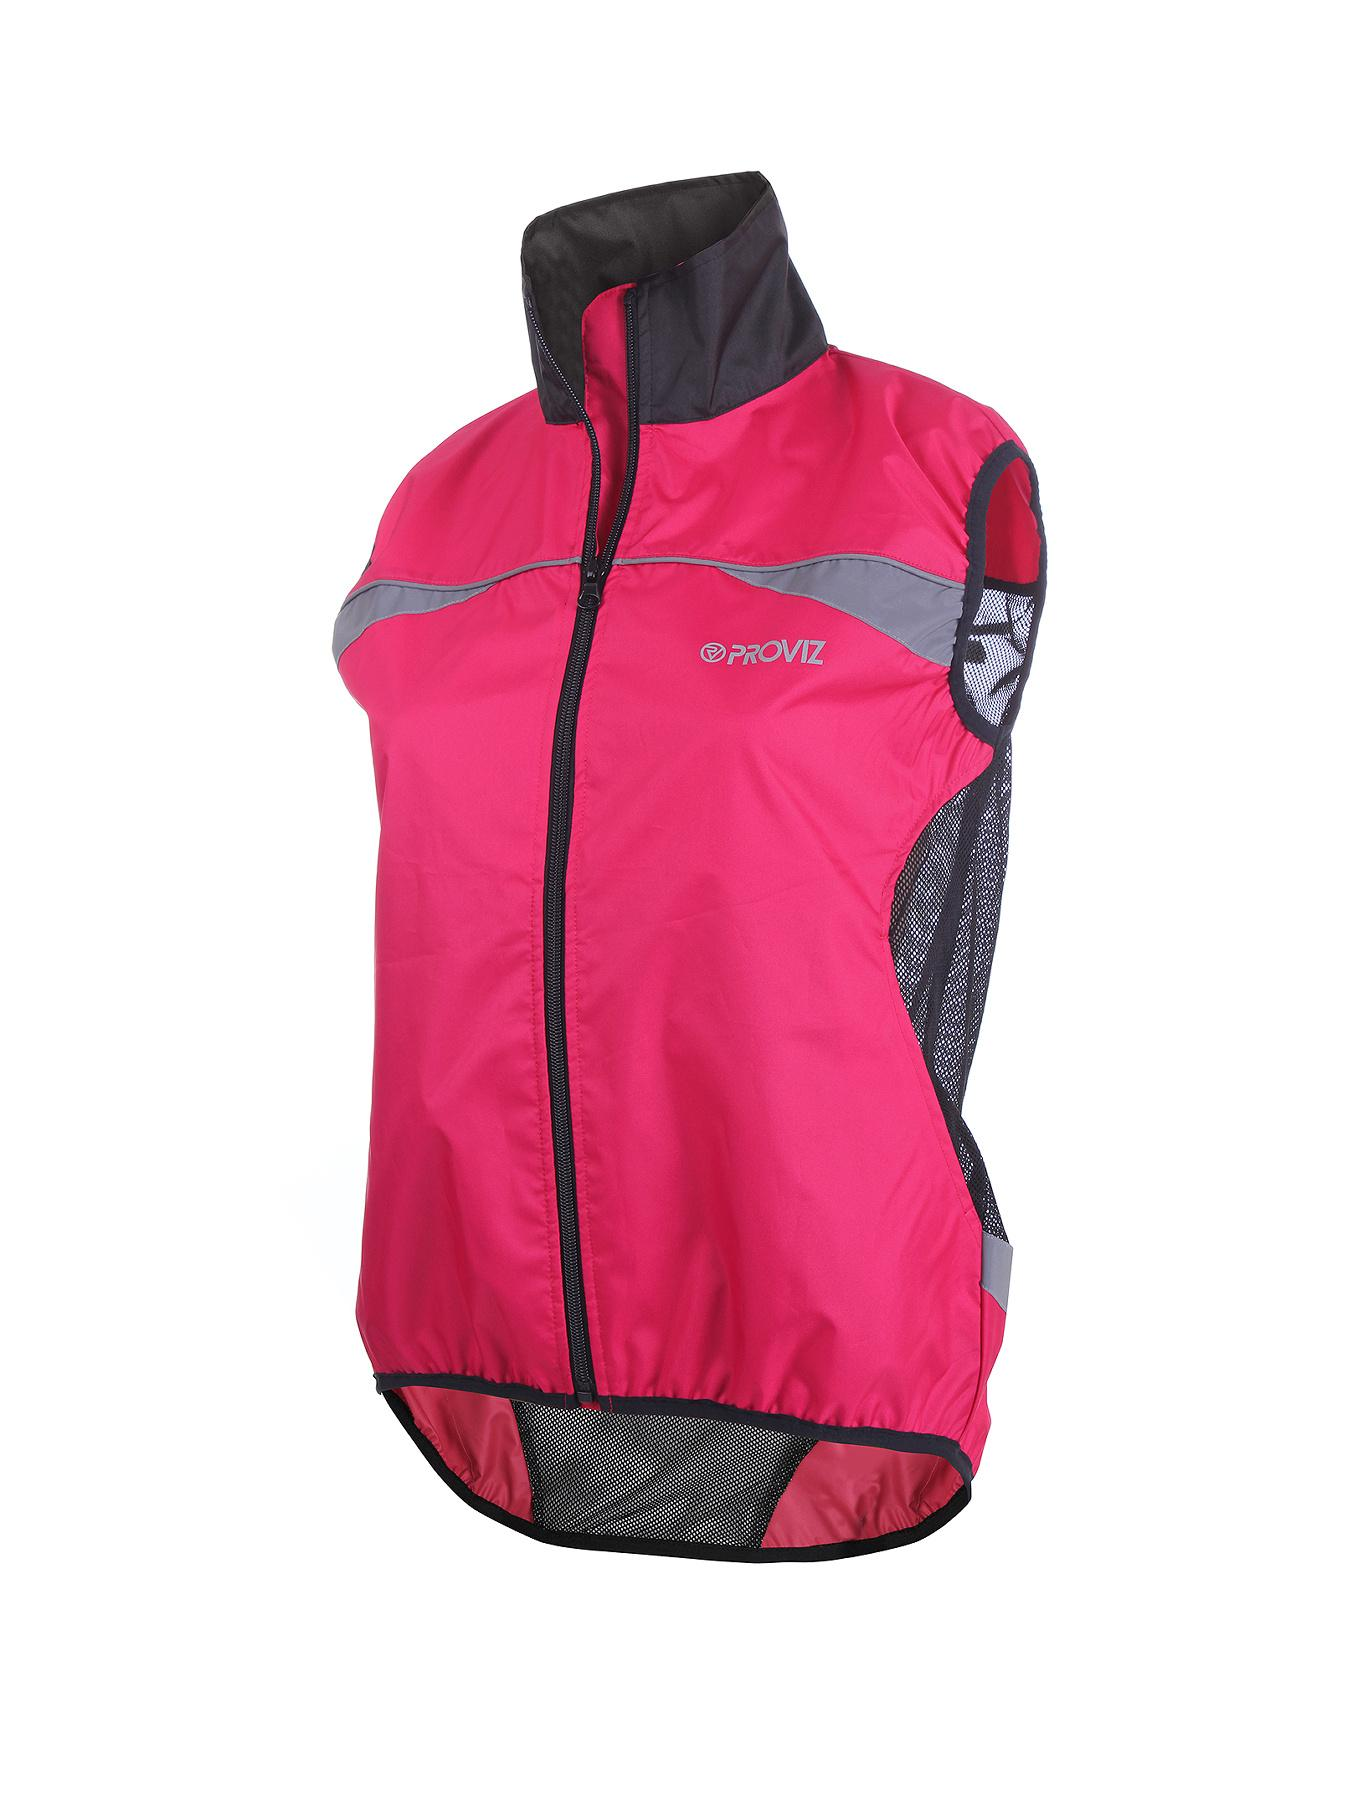 PROVIZ Ladies High Vis Cycling Gilet - Pink - Pink, Pink